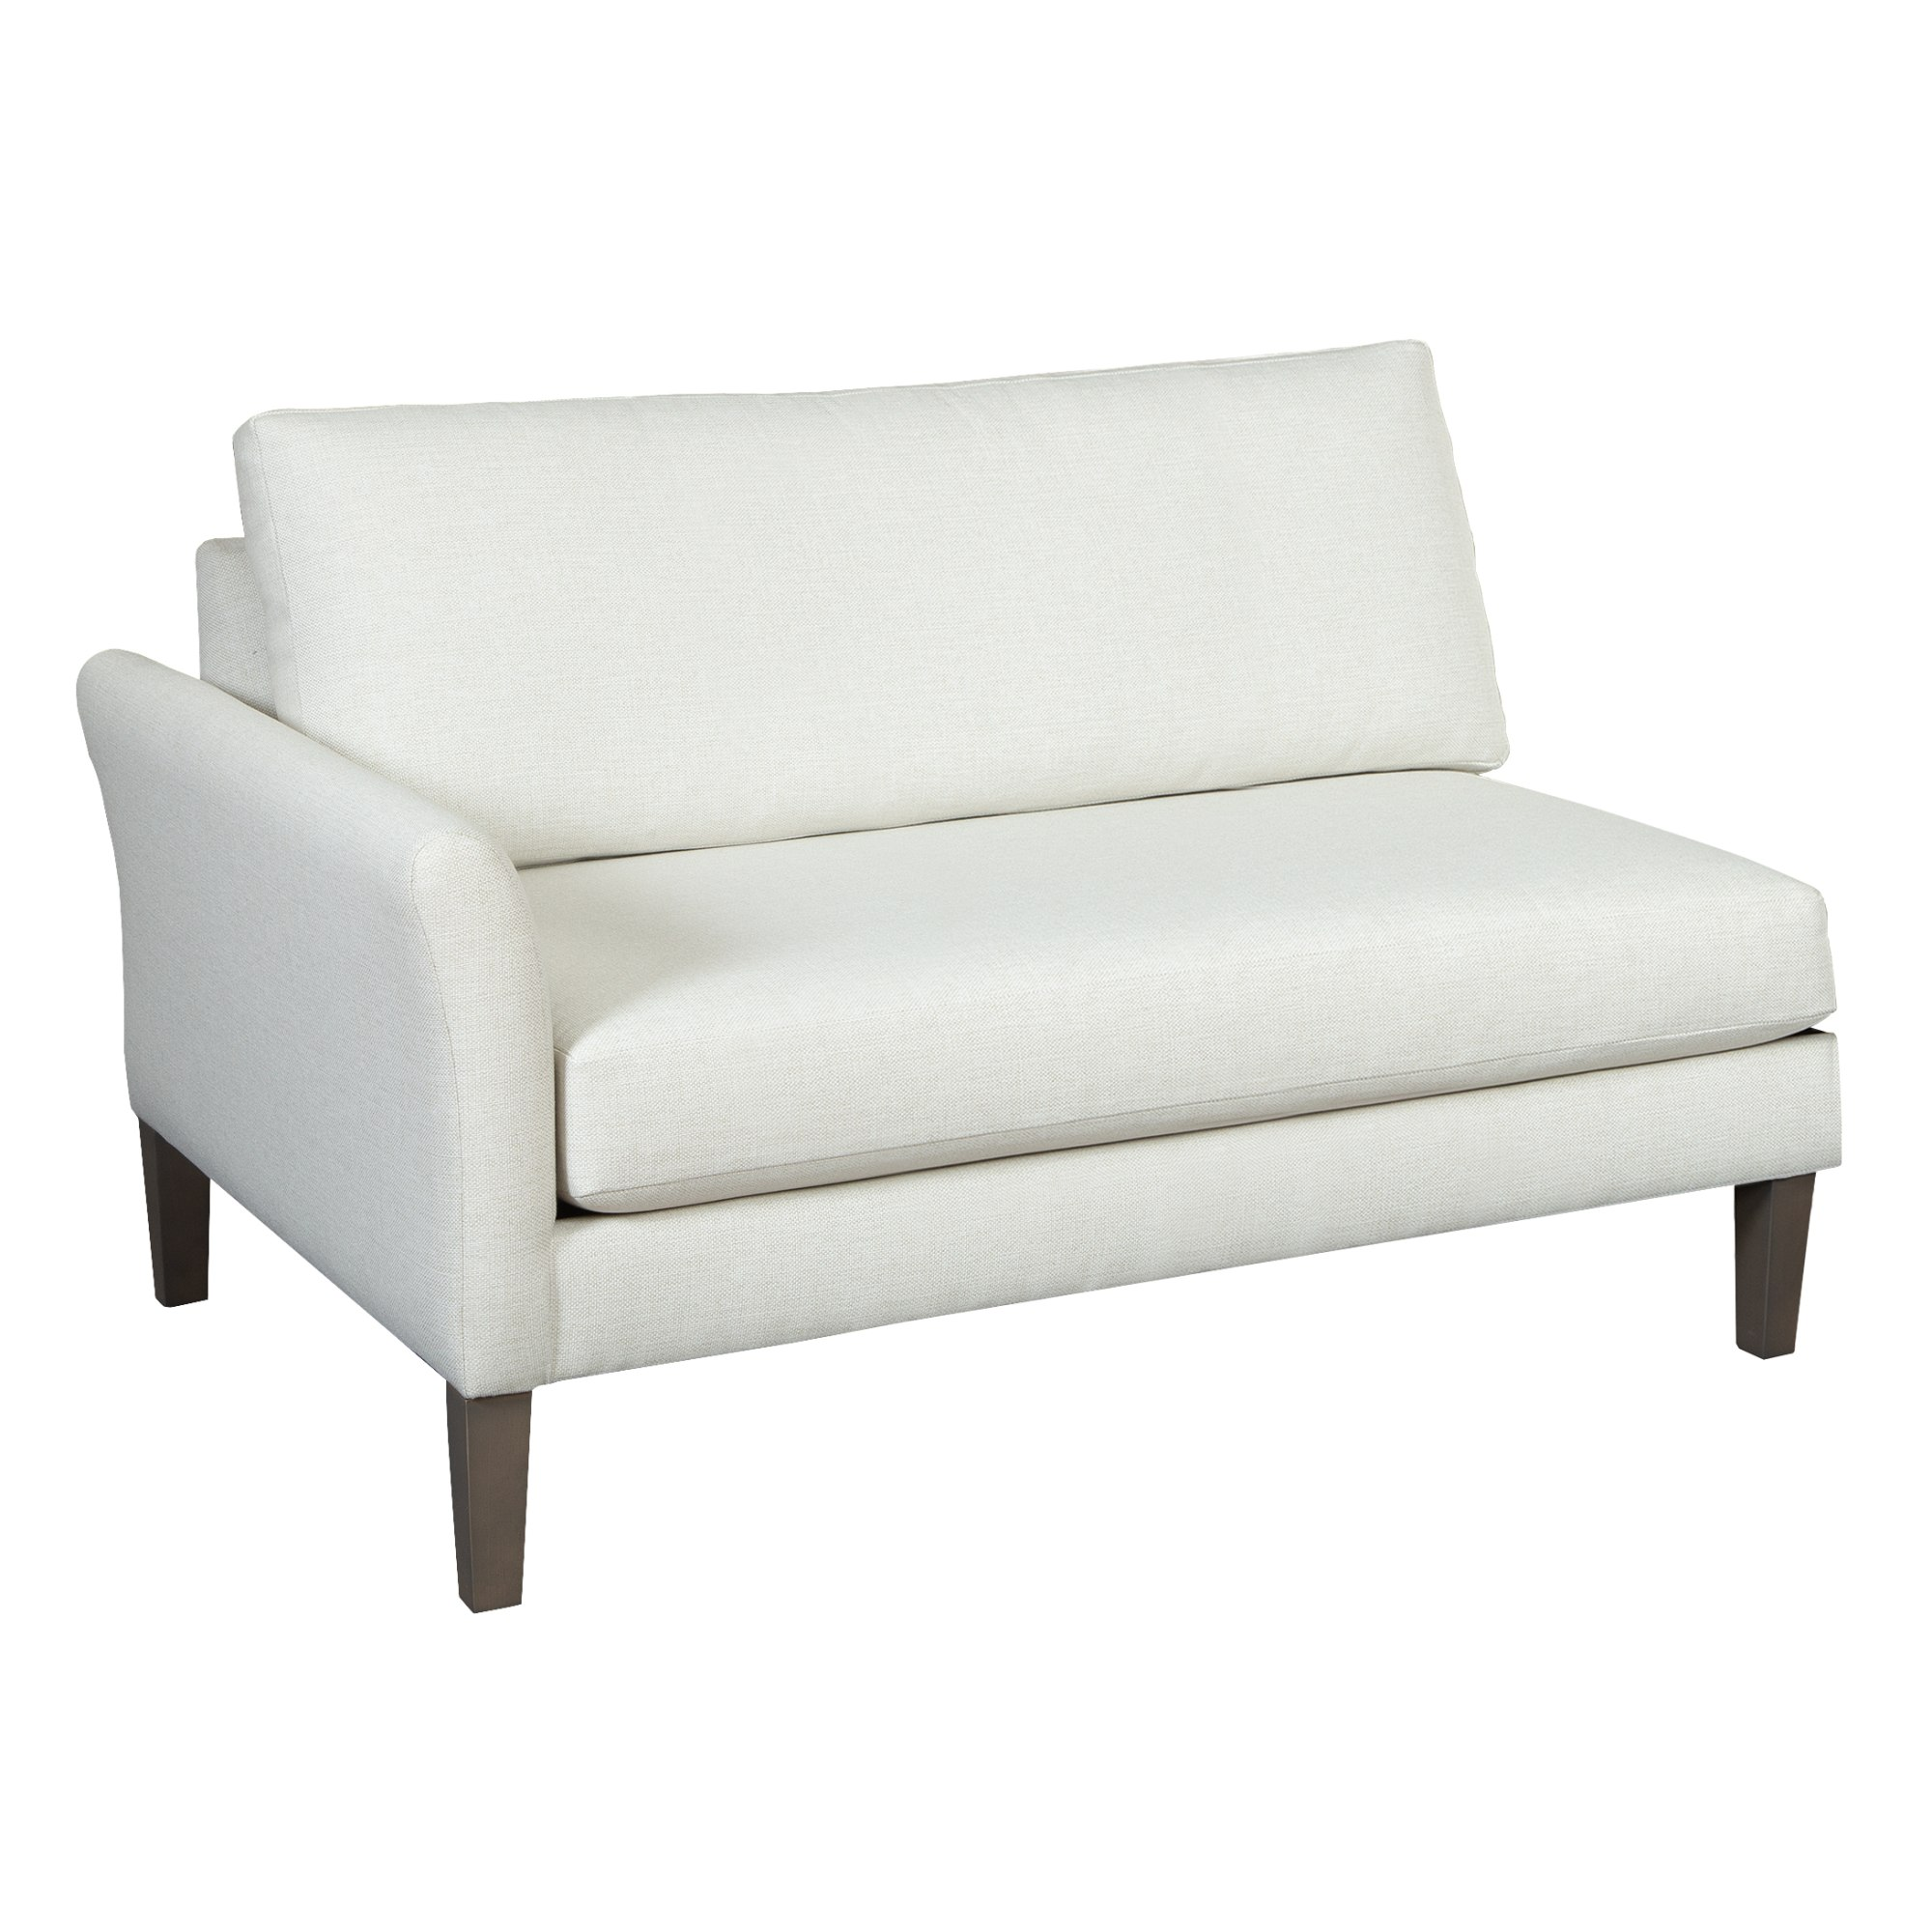 Image for 174363 Metro Flared Arm Single Arm Sofa LAF from Hekman Official Website